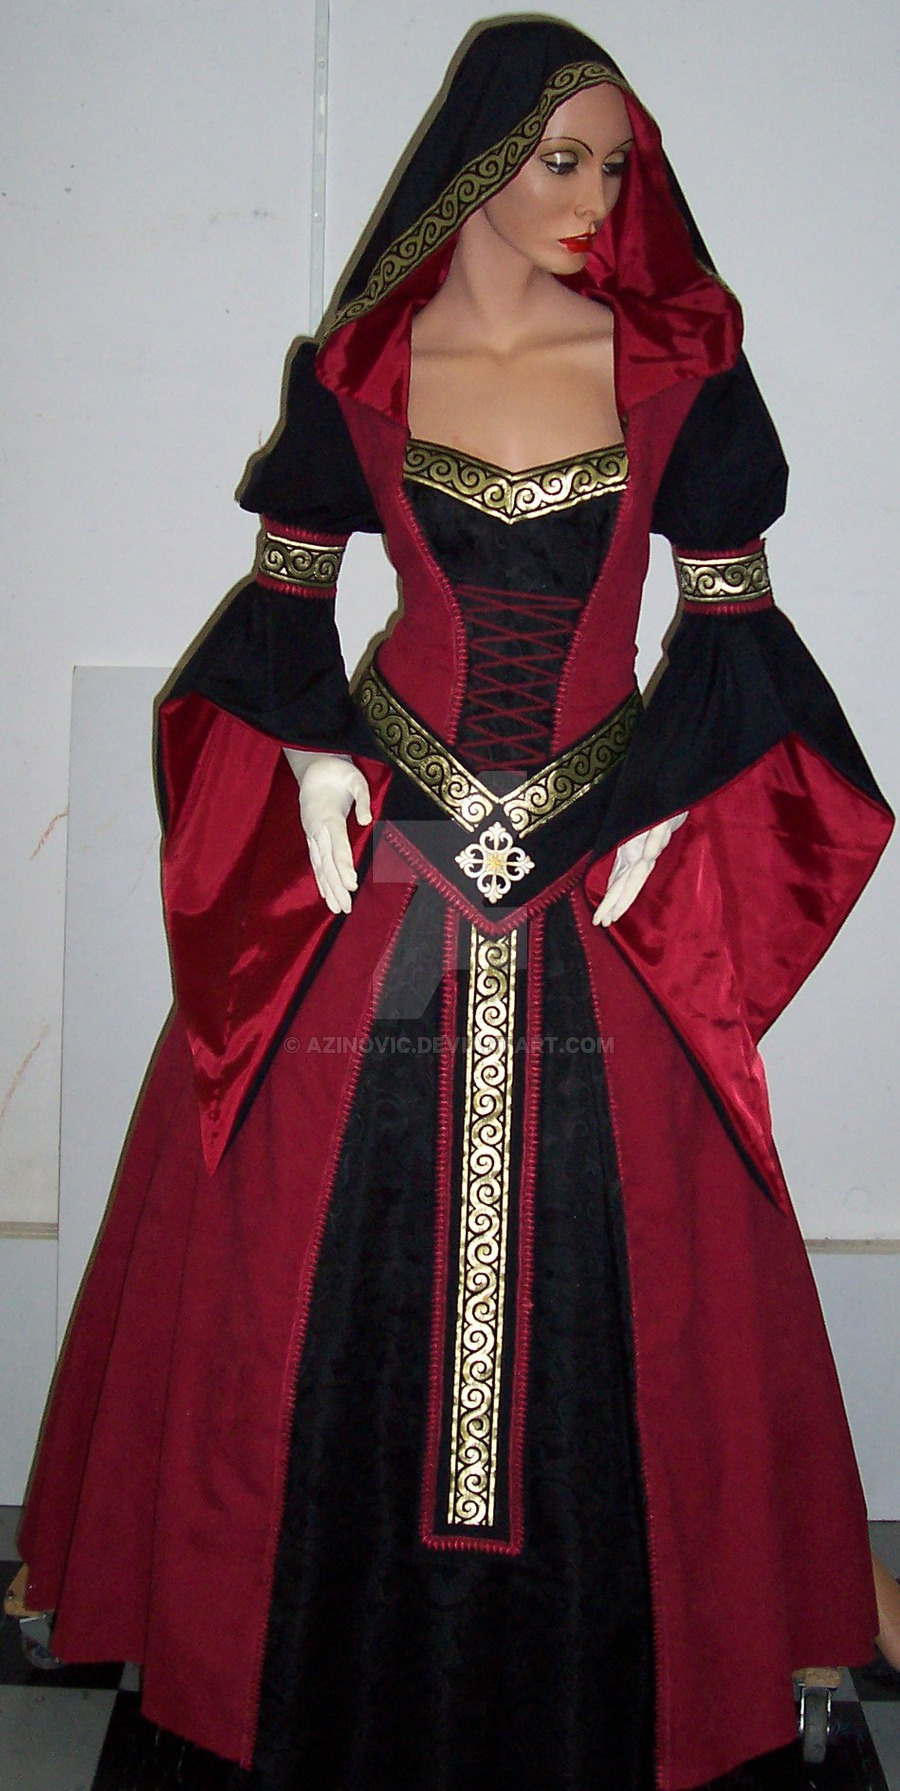 medieval_dress_sarah_by_azinovic-d62c5ey.jpg